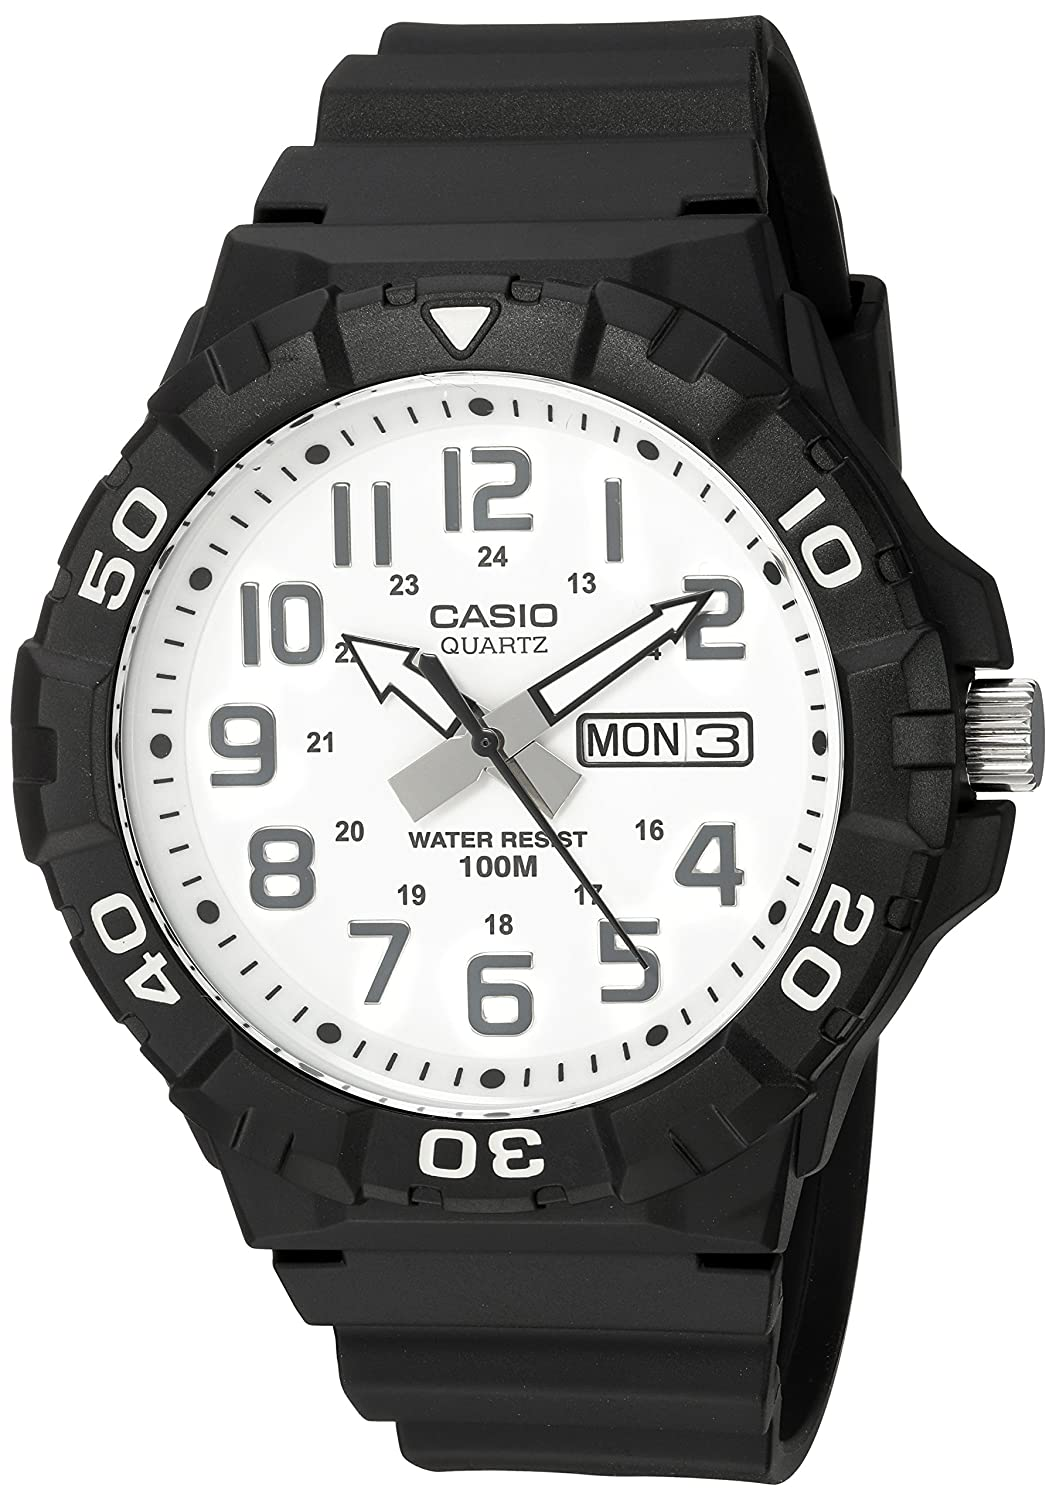 Casio Men s Diver Style Quartz Resin Casual Watch, Color Black Model MRW-210H-7AVCF